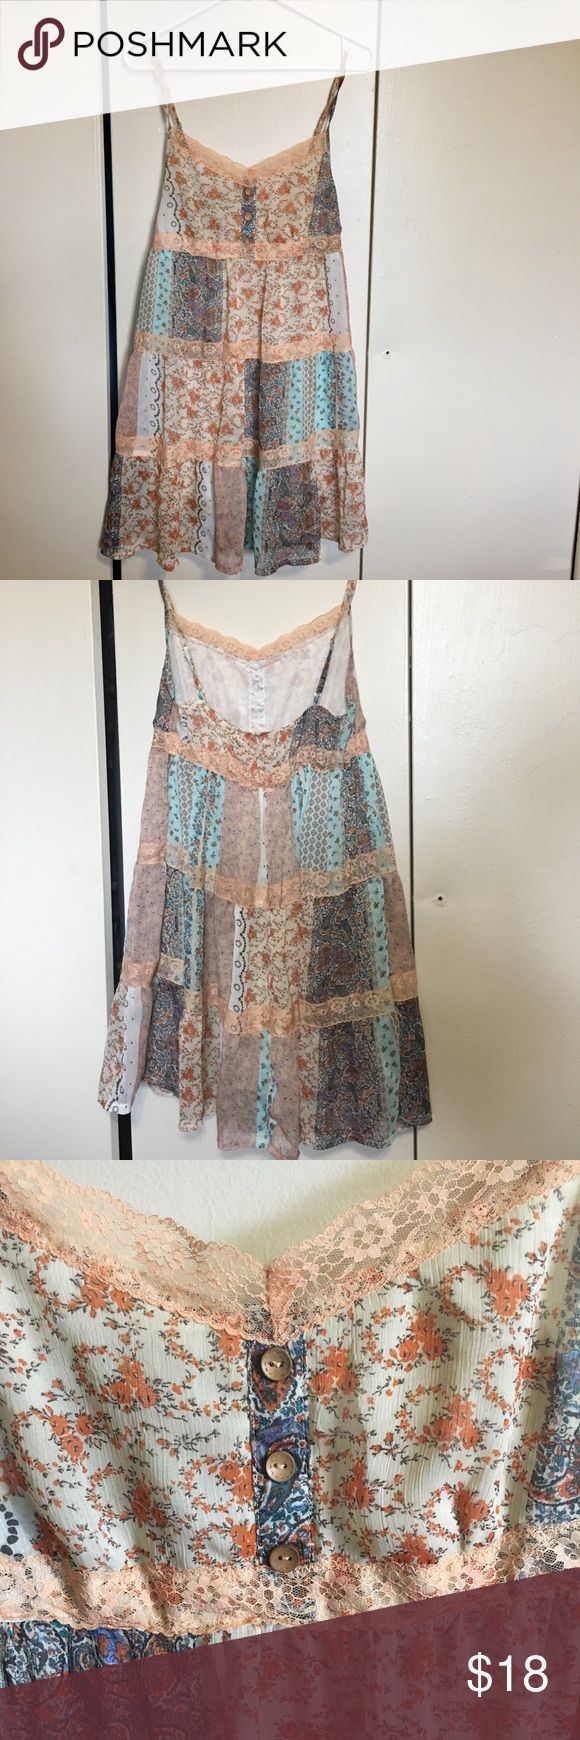 Free People style sun dress- great for festivals! this was made by Blue Bird.  Free People tagged for views.    this is a size medium dress, flowing style with beautiful pattern and colors.  perfect for summer time and music festivals!  previously loved but still in good condition! Free People Dresses